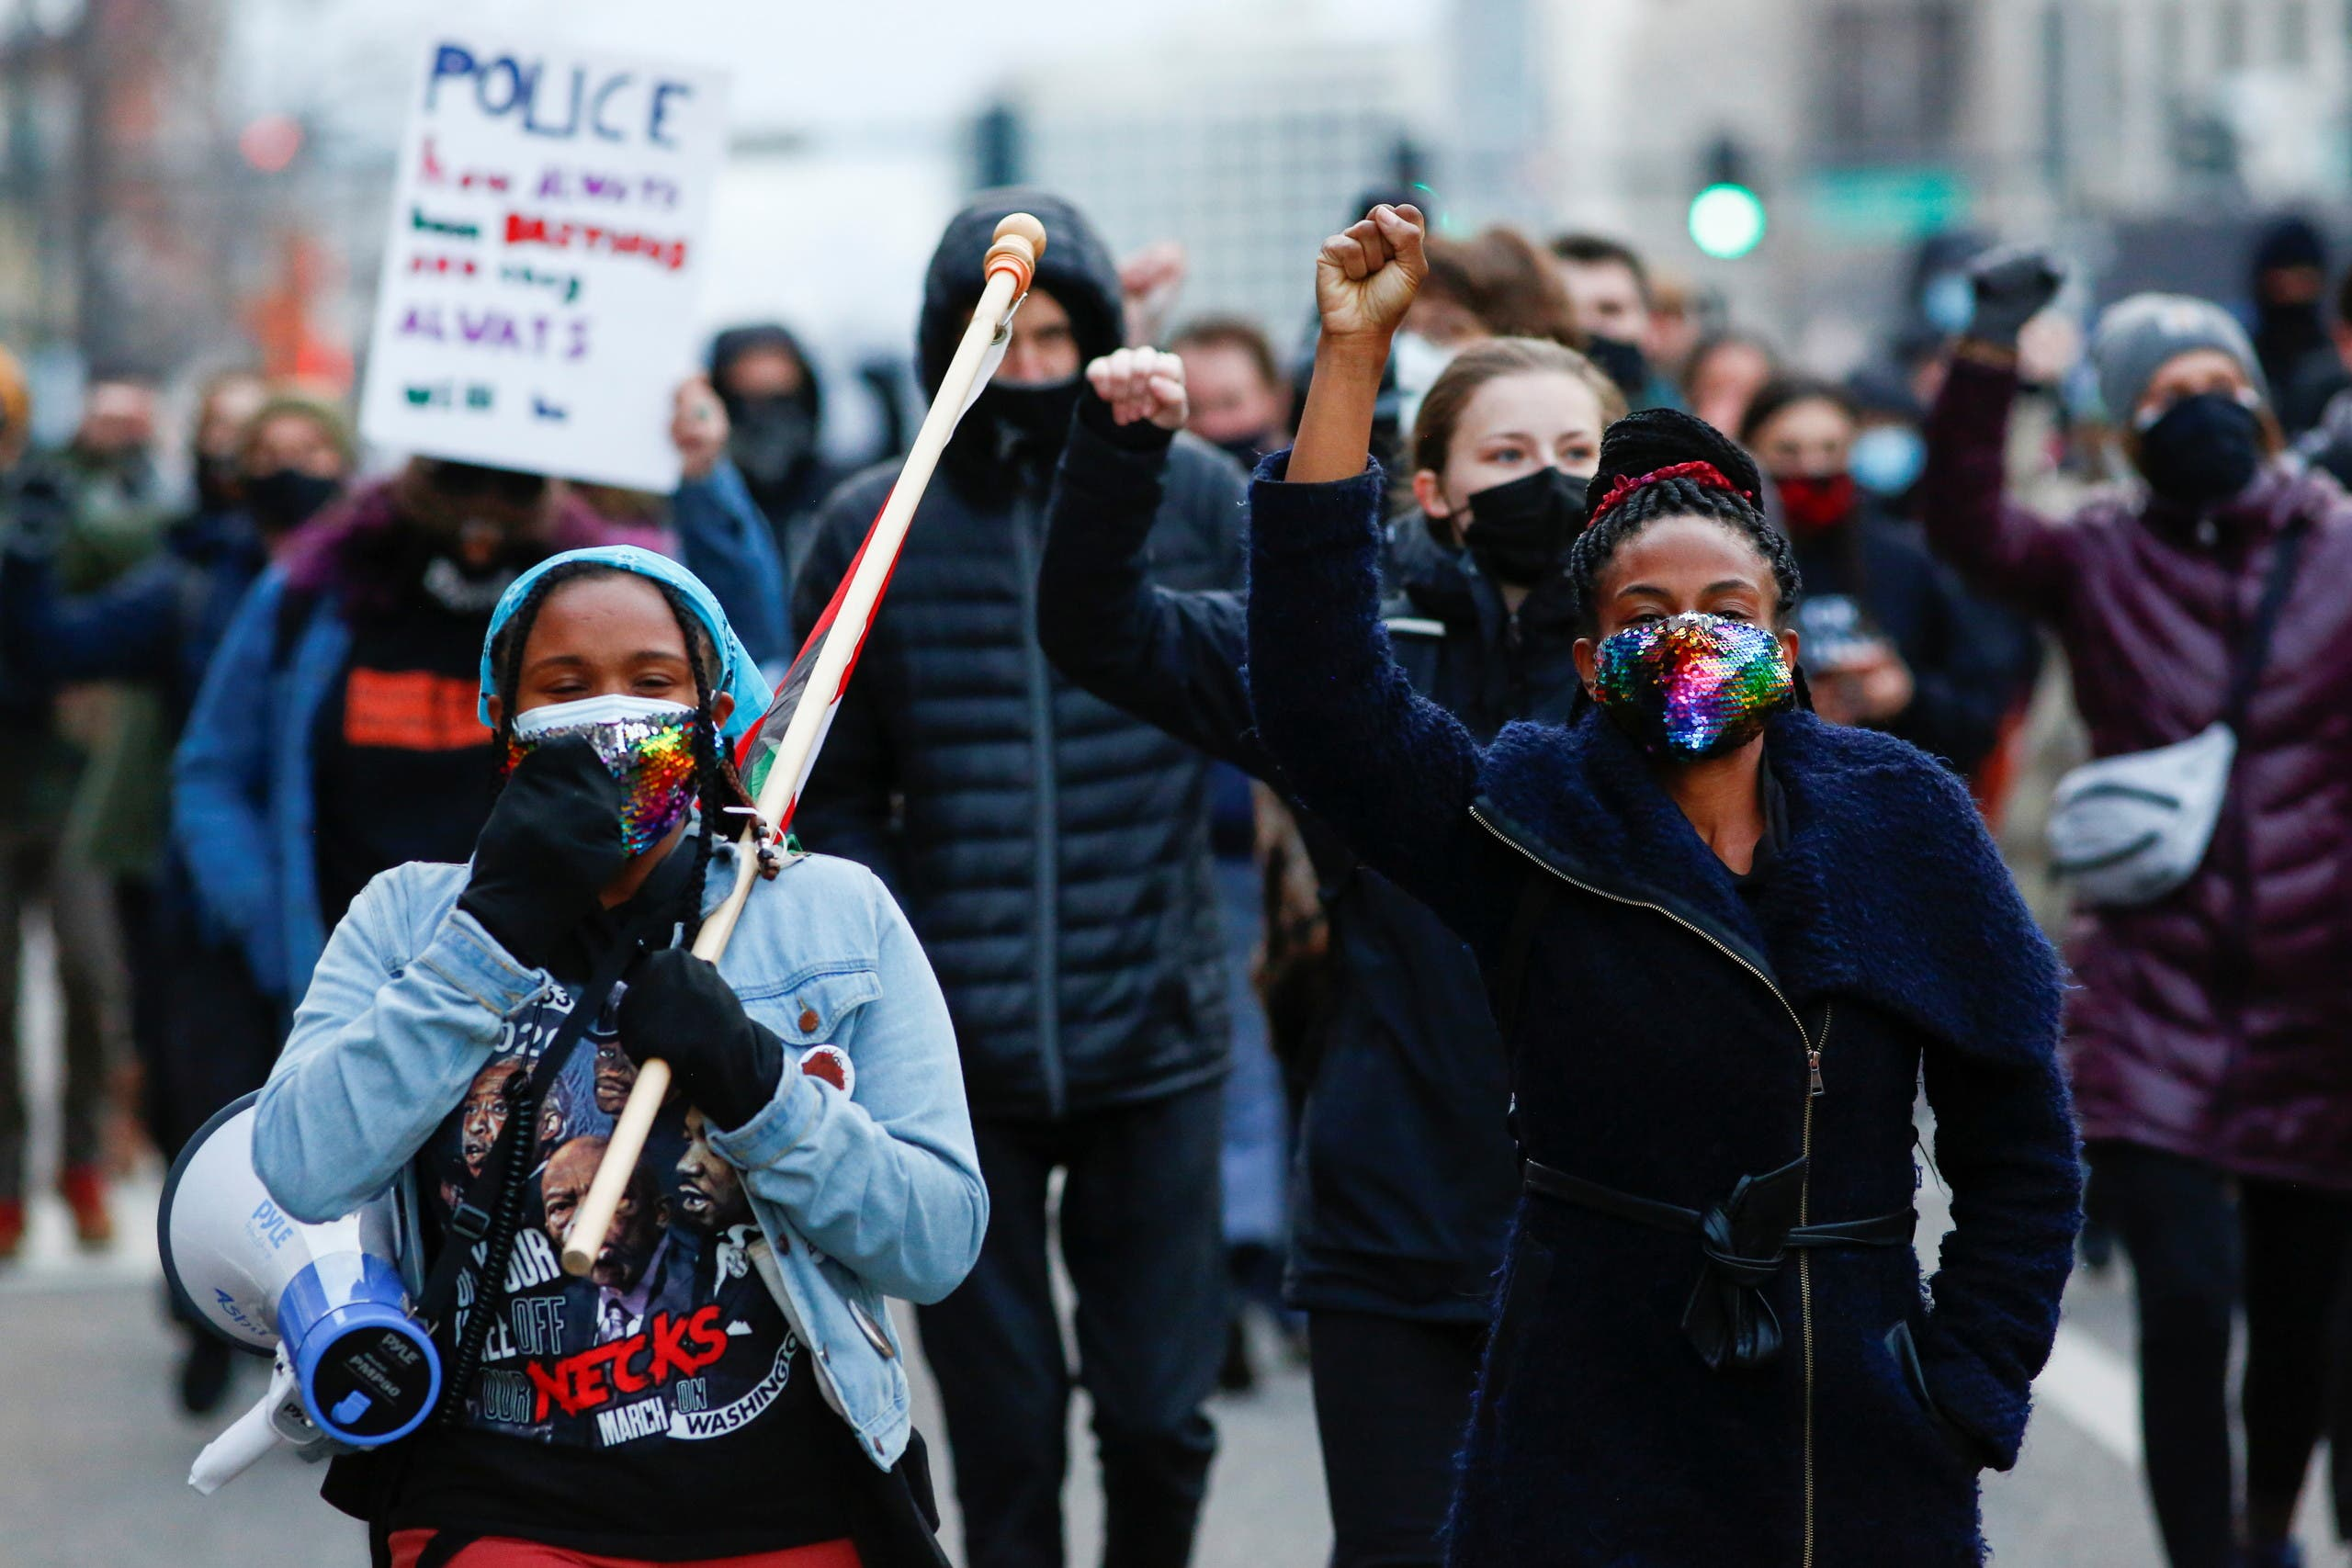 People march down Colfax Avenue during a demonstration protesting police violence after the verdict in the trial of former Minneapolis police officer Derek Chauvin, found guilty of the death of Floyd, in Denver, Colorado, US, April 20, 2021. (Reuters)